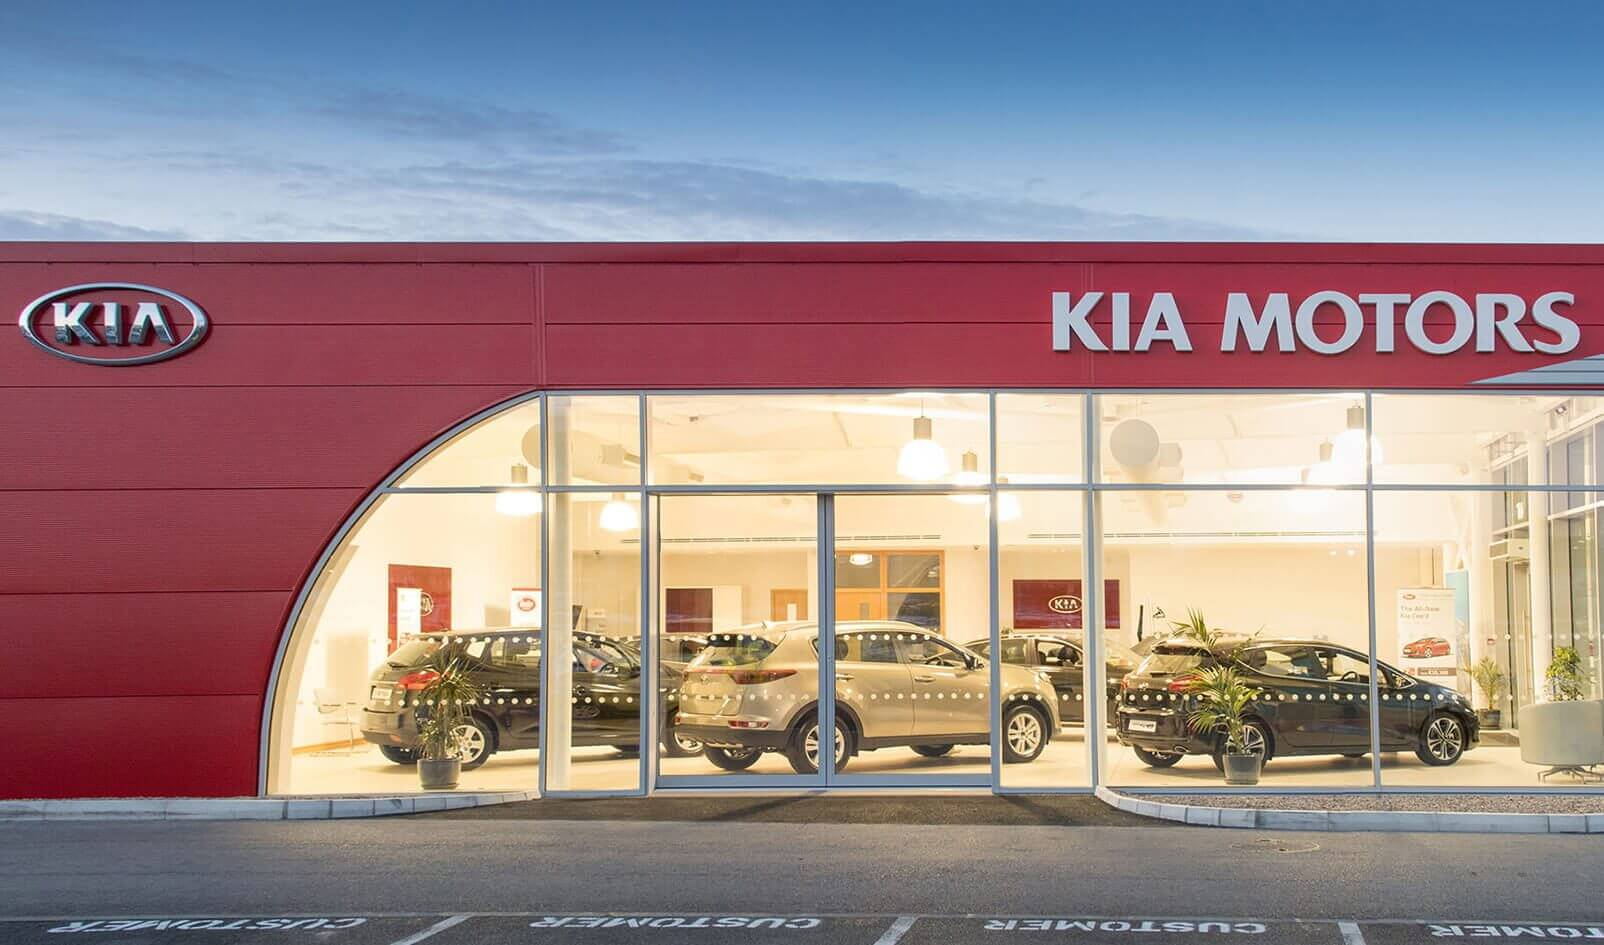 Slider Image Mixed Use Retail Cjfa Architecture Kia Dooley Motors